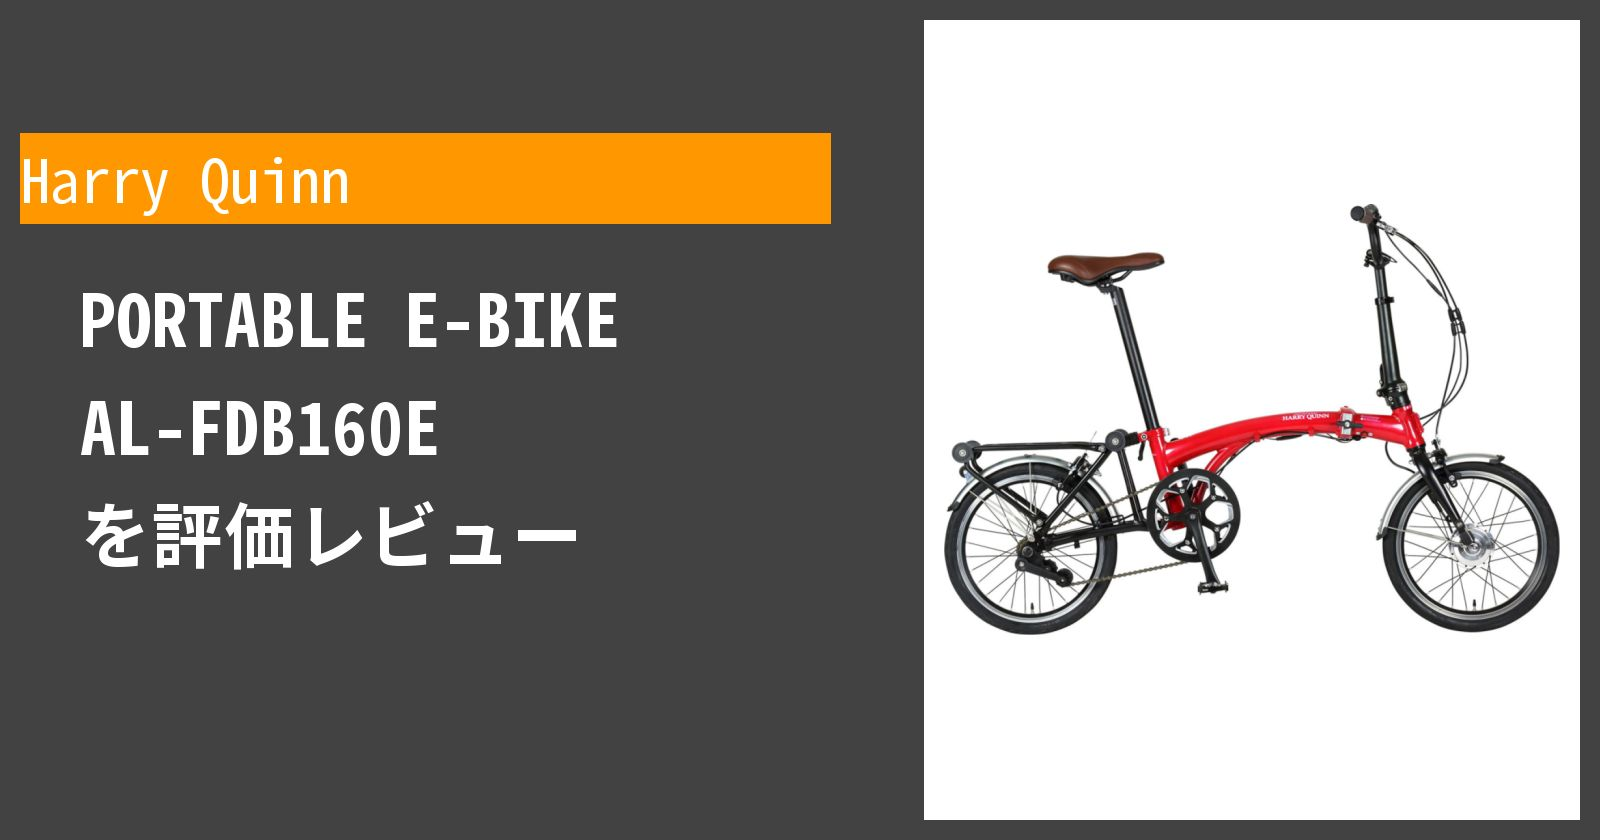 PORTABLE E-BIKE AL-FDB160Eを徹底評価